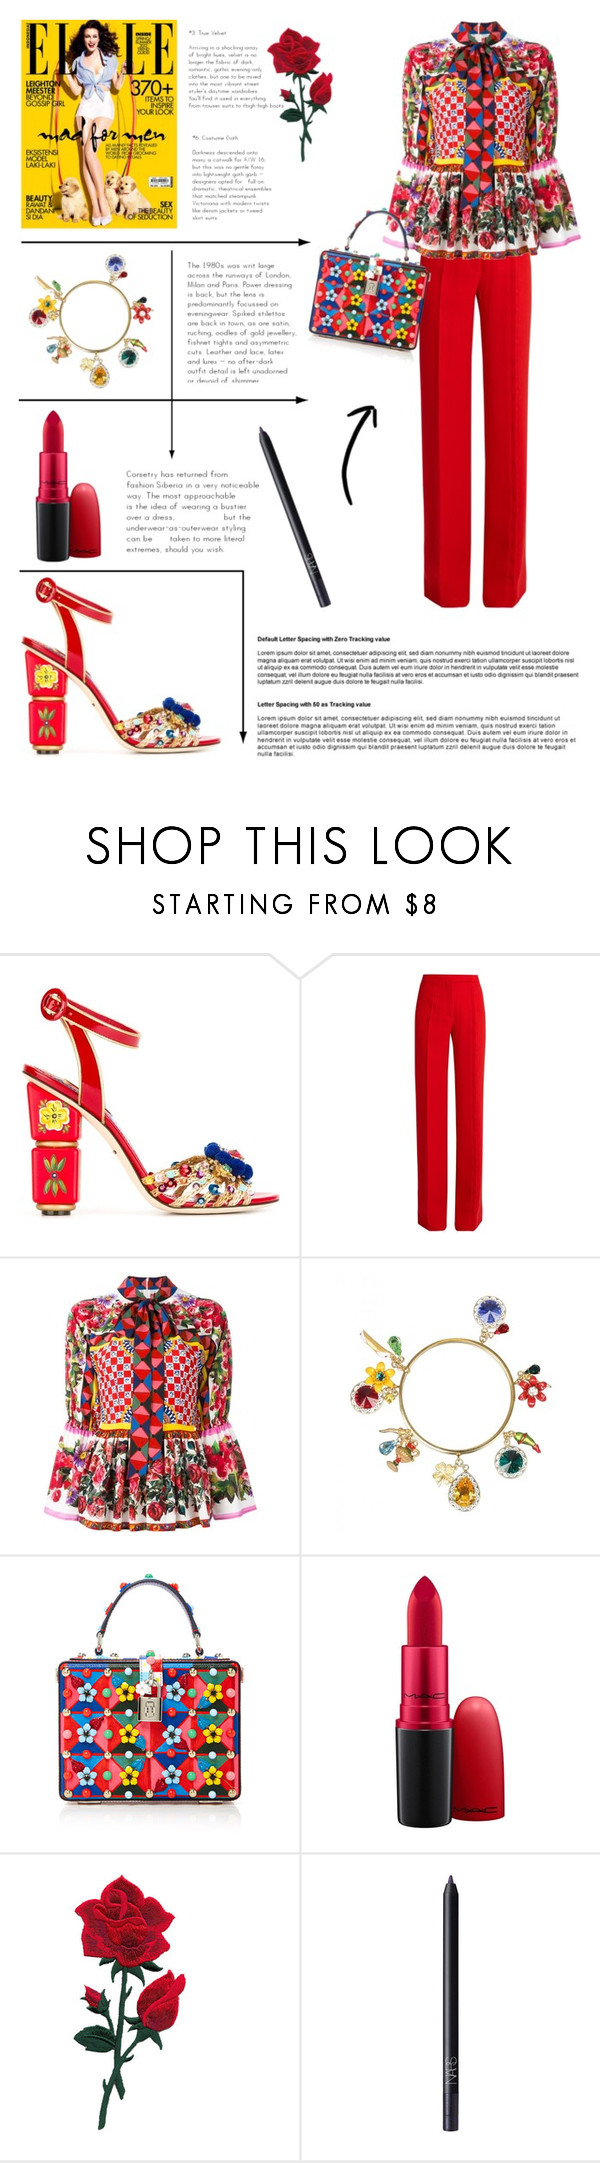 """""""You Got Me Like Boom Boom..."""" by zaylestyle ❤ liked on Polyvore featuring Dolce&Gabbana, Marco de Vincenzo, MAC Cosmetics and NARS Cosmetics"""